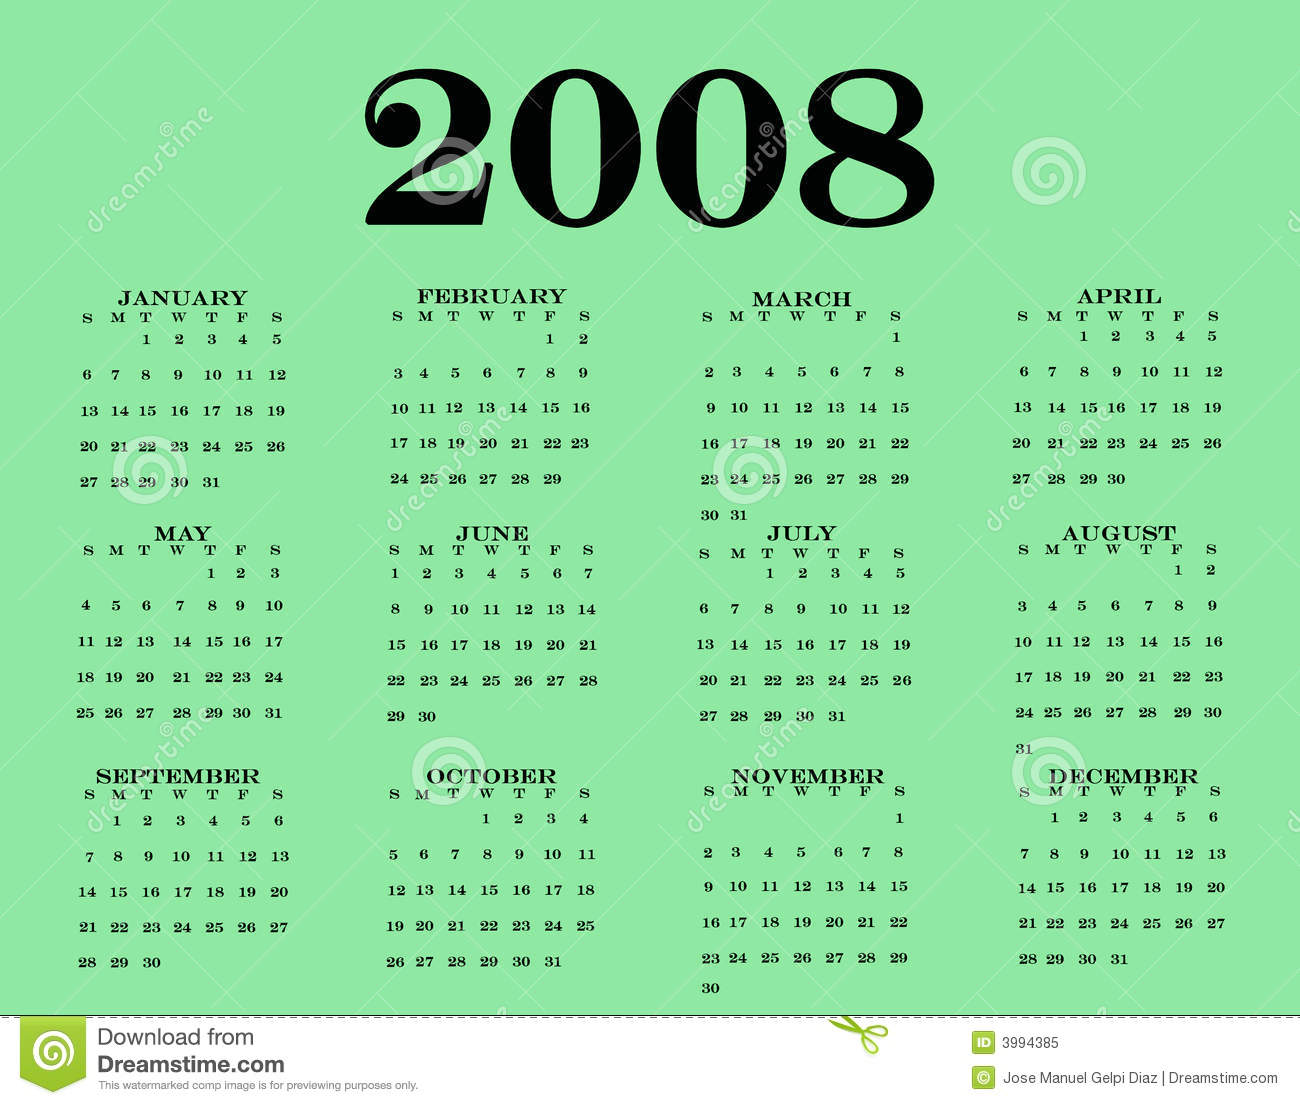 2008 Calendar Royalty Free Stock Photo - Image: 3994385